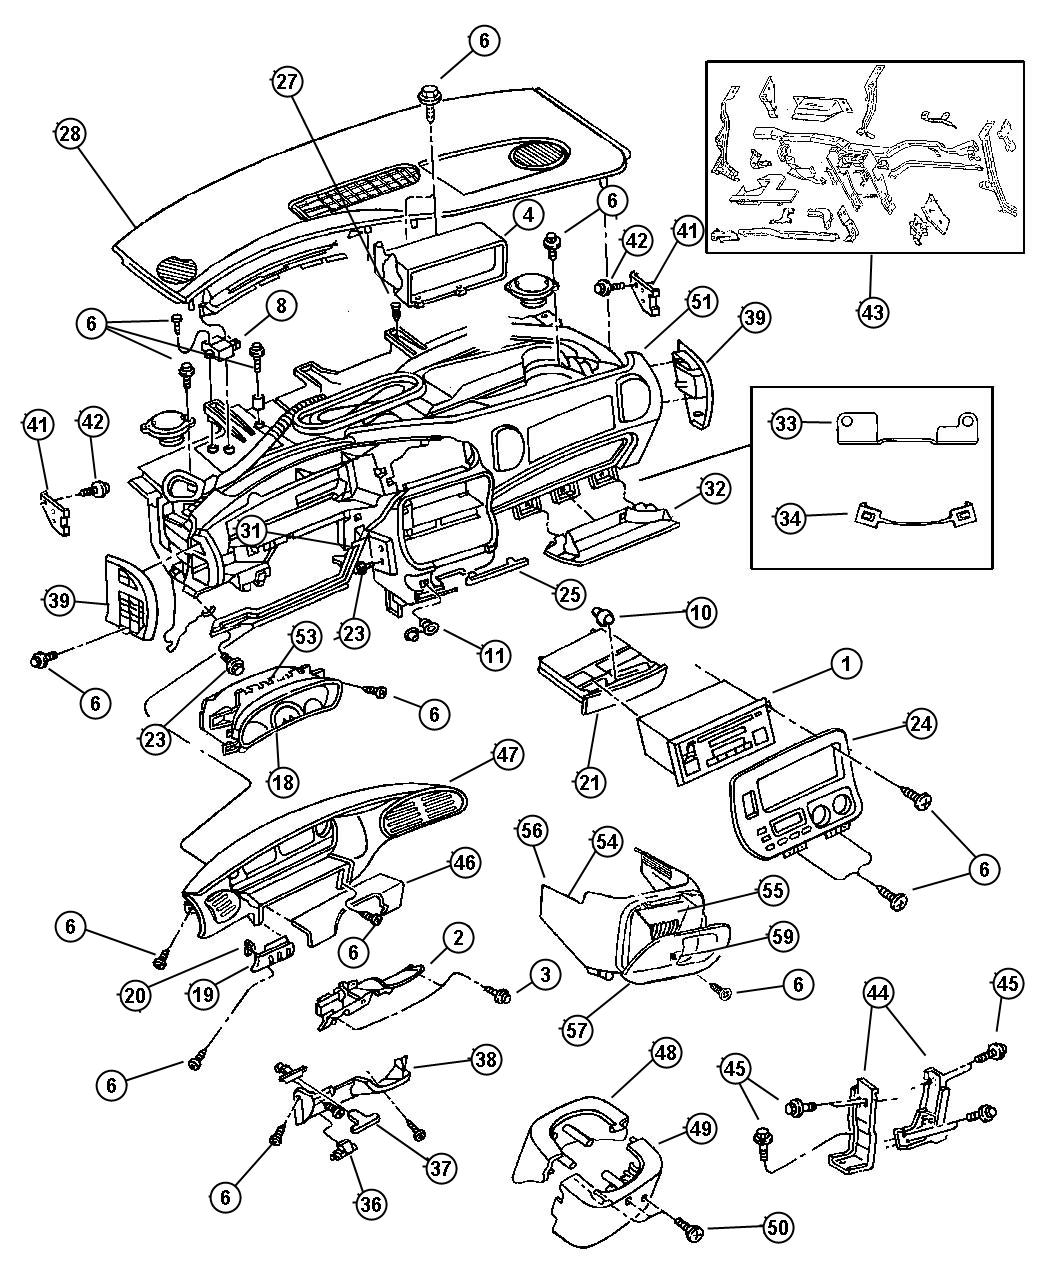 Chrysler Voyager Fuse Box Diagram Wiring Library 1997 Plymouth Engine Another Blog About U2022 2006 300